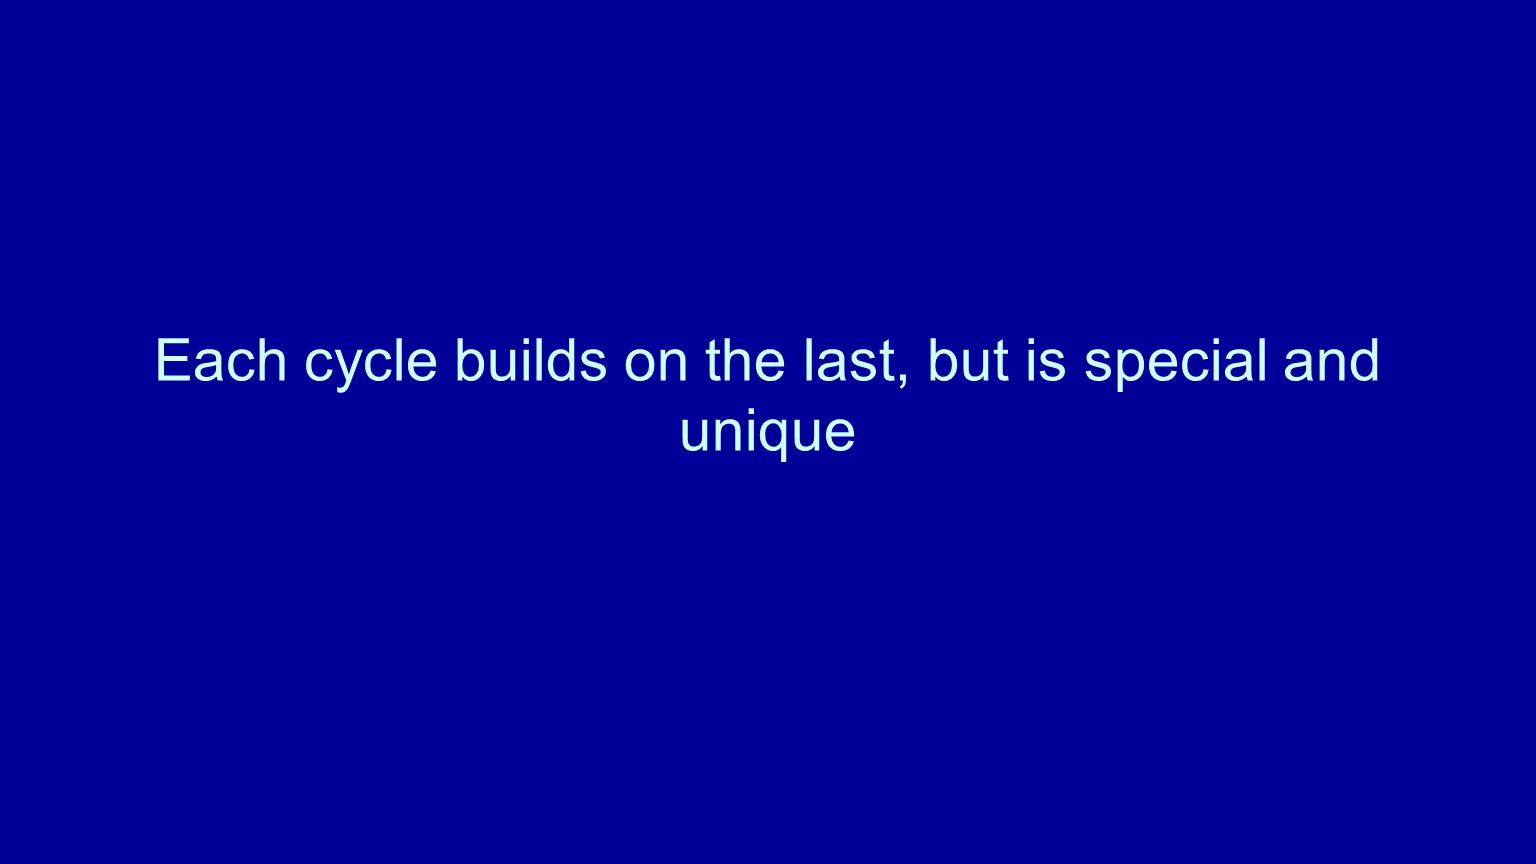 Each cycle builds on the last, but is special and unique